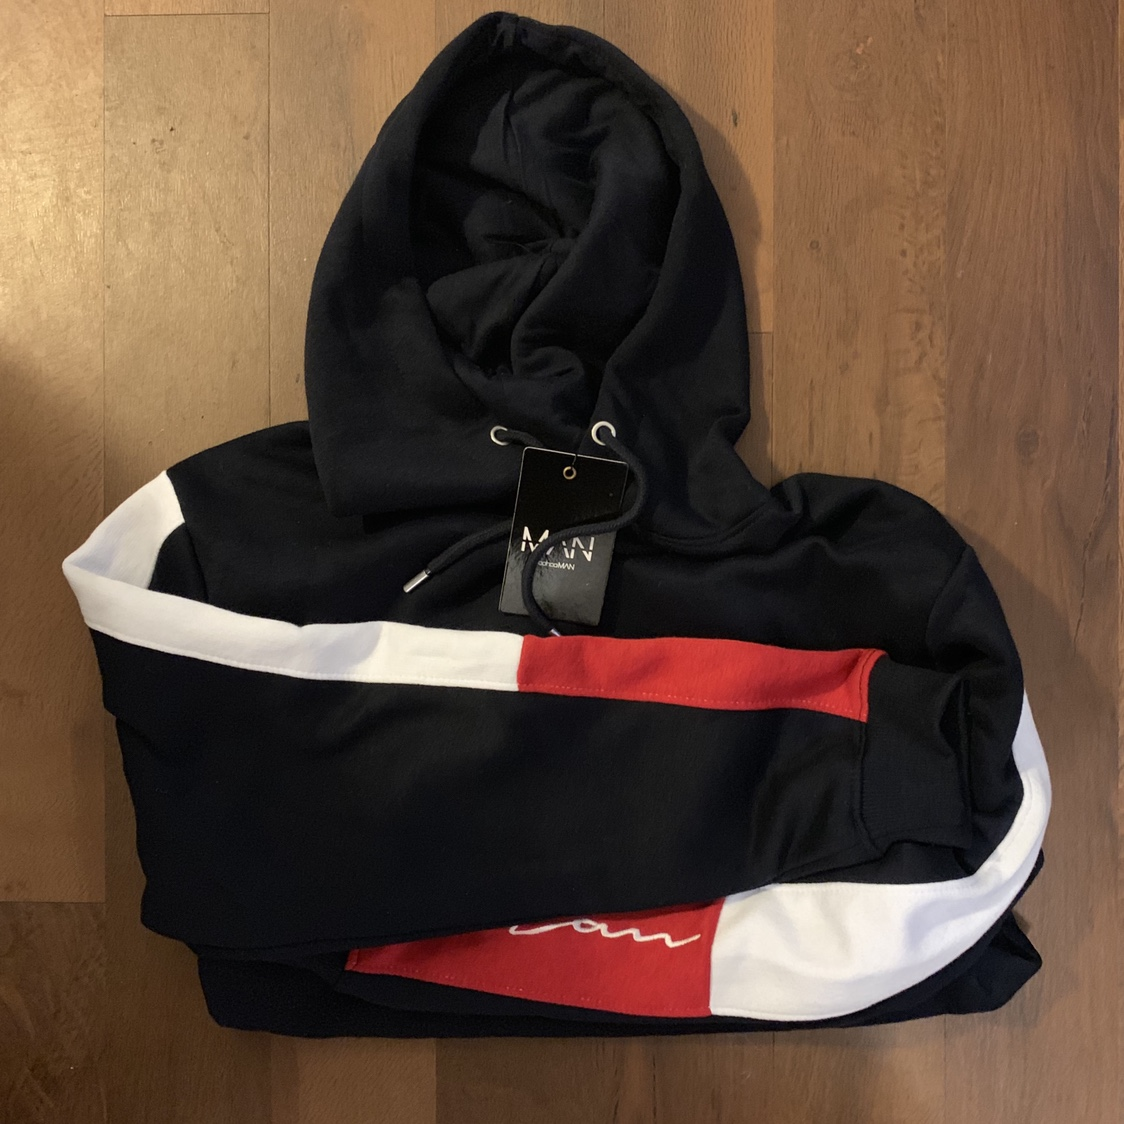 Boohoo Man tracksuit blue white and red, fully sold Depop